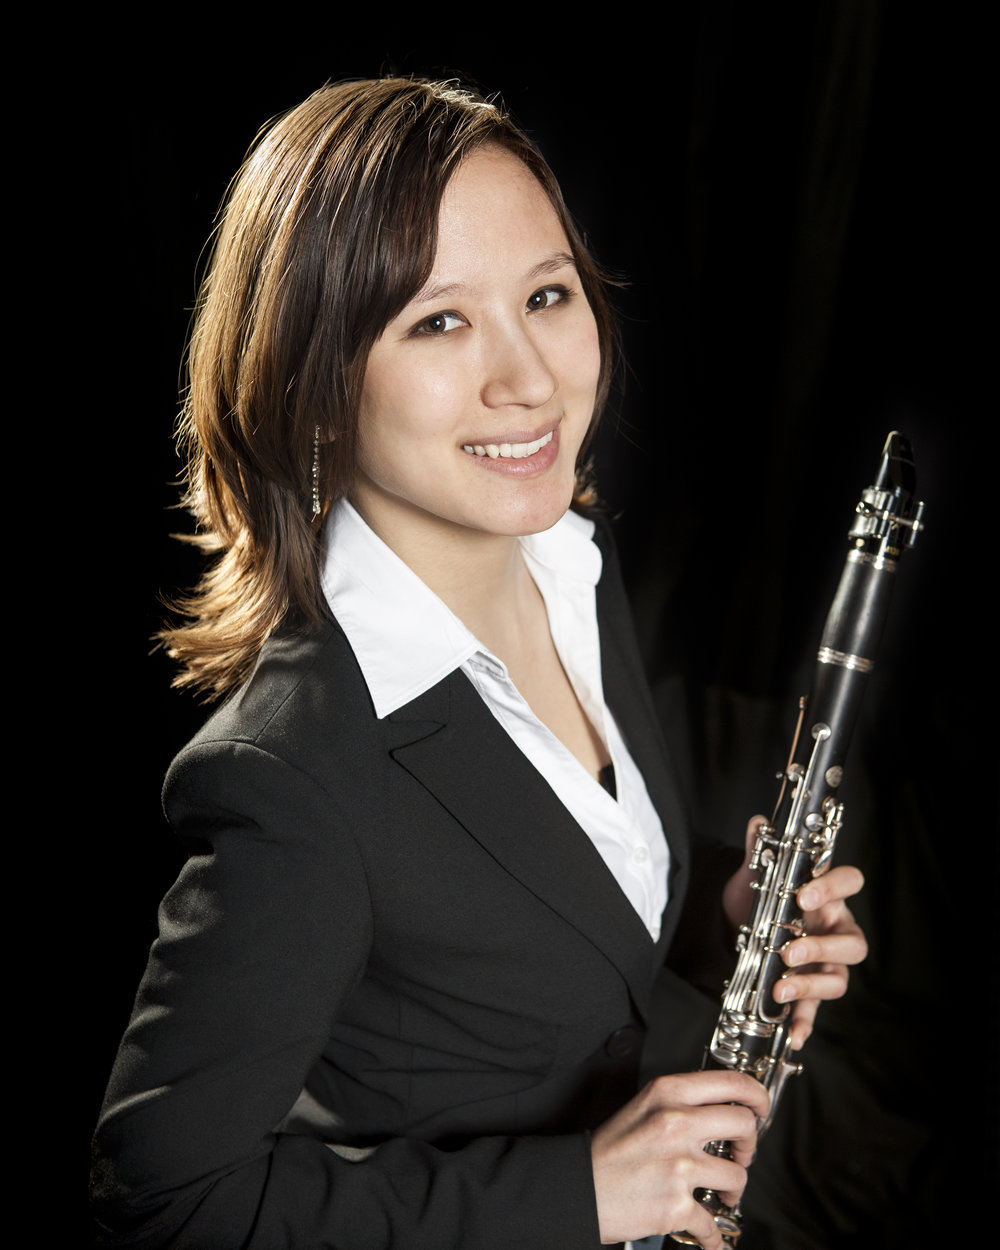 Composer and clarinetist Stephanie Berg